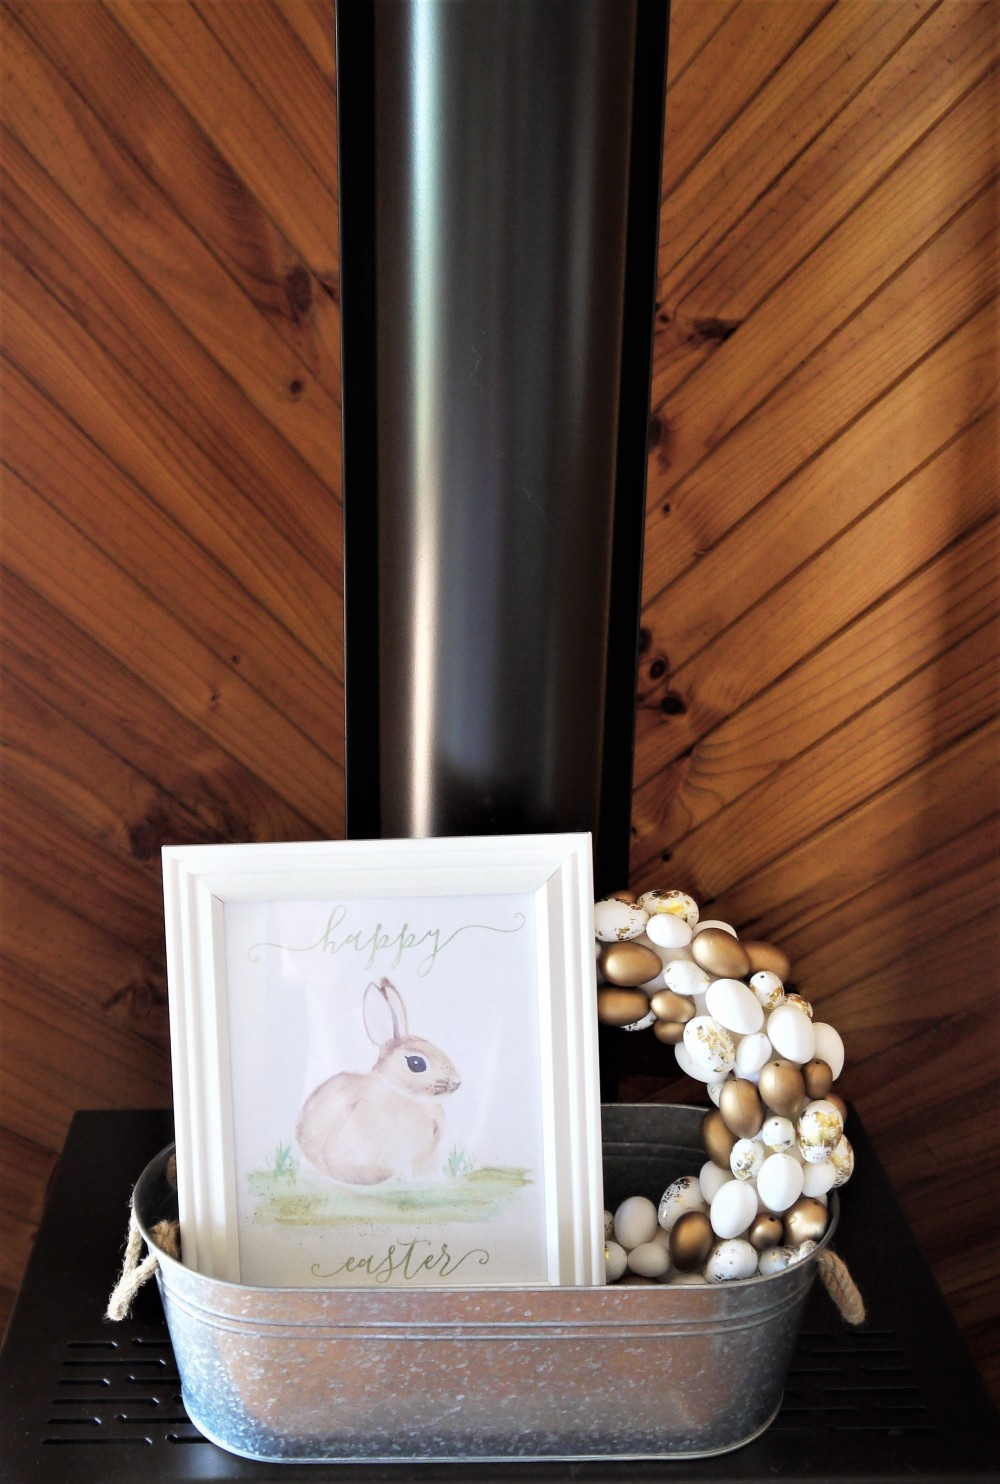 Easter-mantel-decor